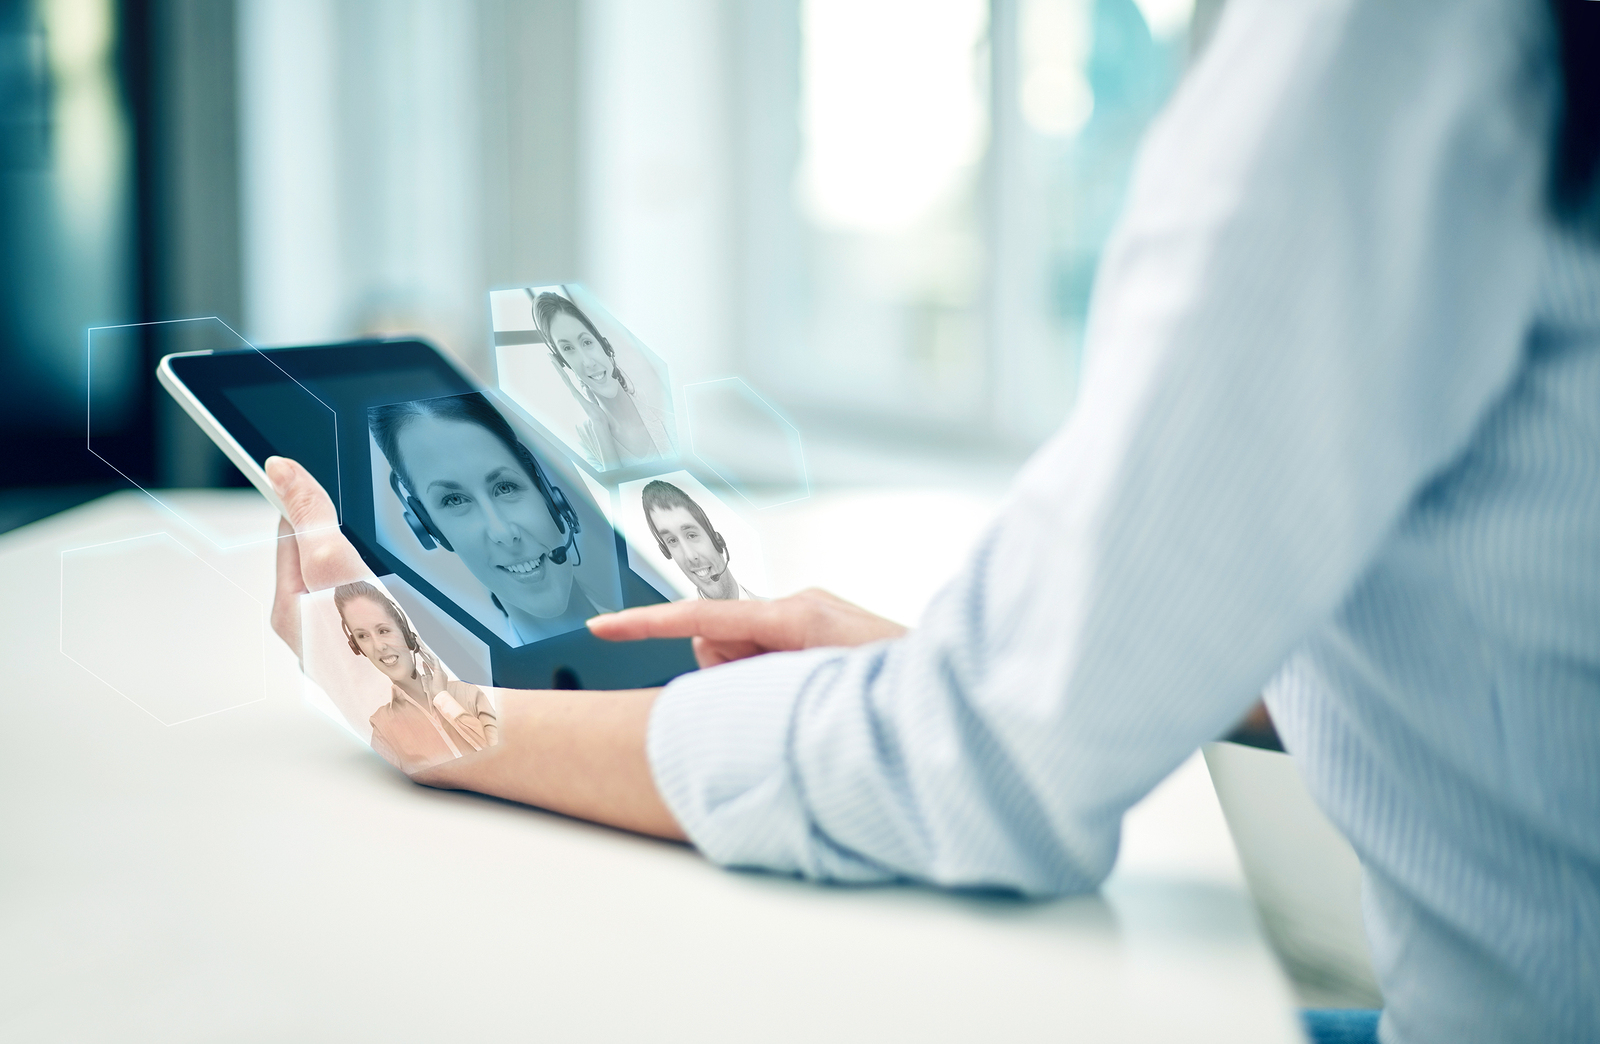 How Can Companies Use Mobile Apps to Improve Customer Experience?